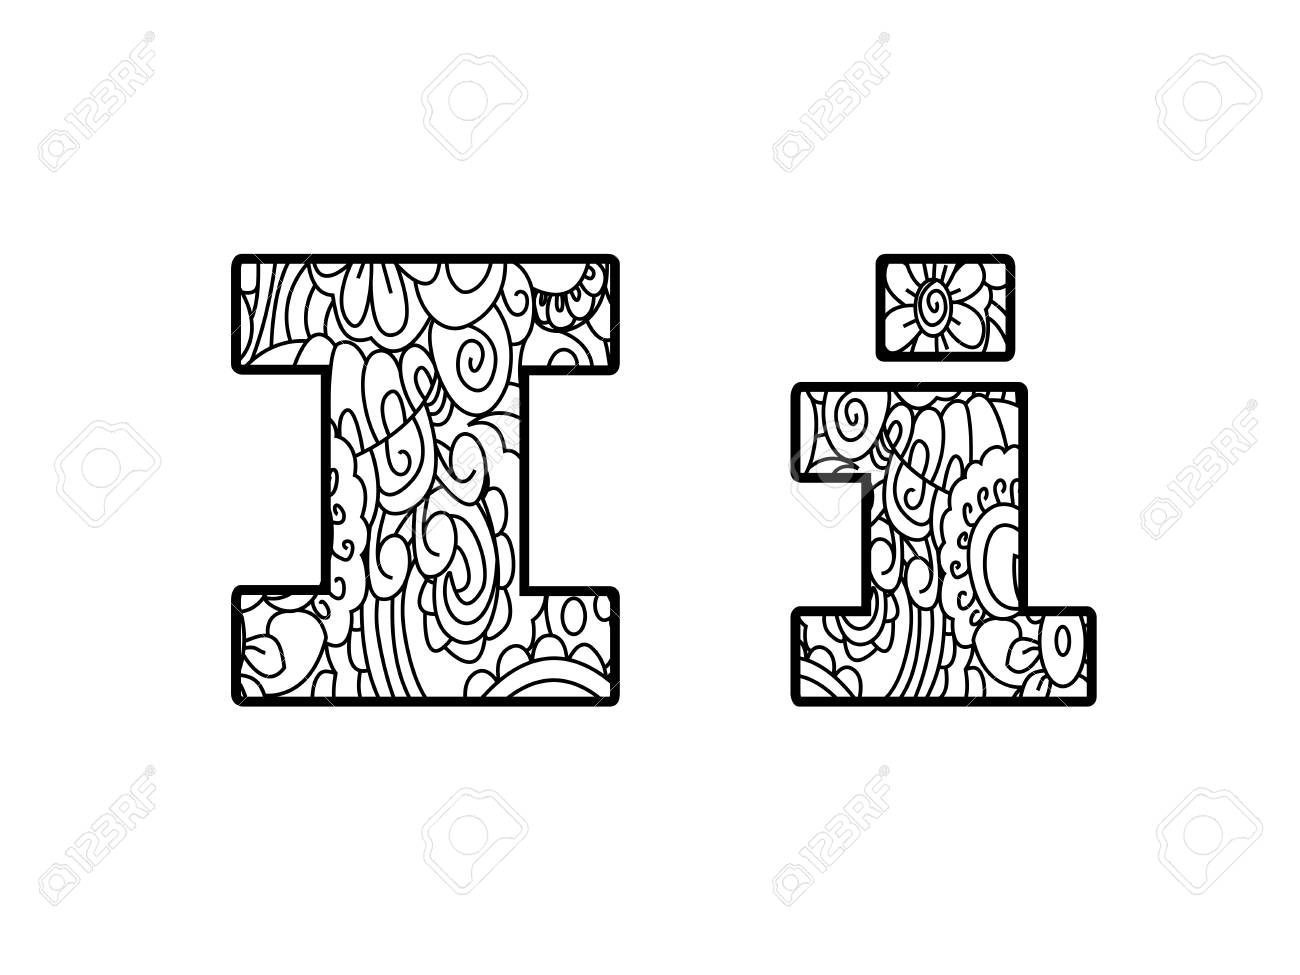 Anti Coloring Book Alphabet, The Letter I Raster Illustration Stock ...